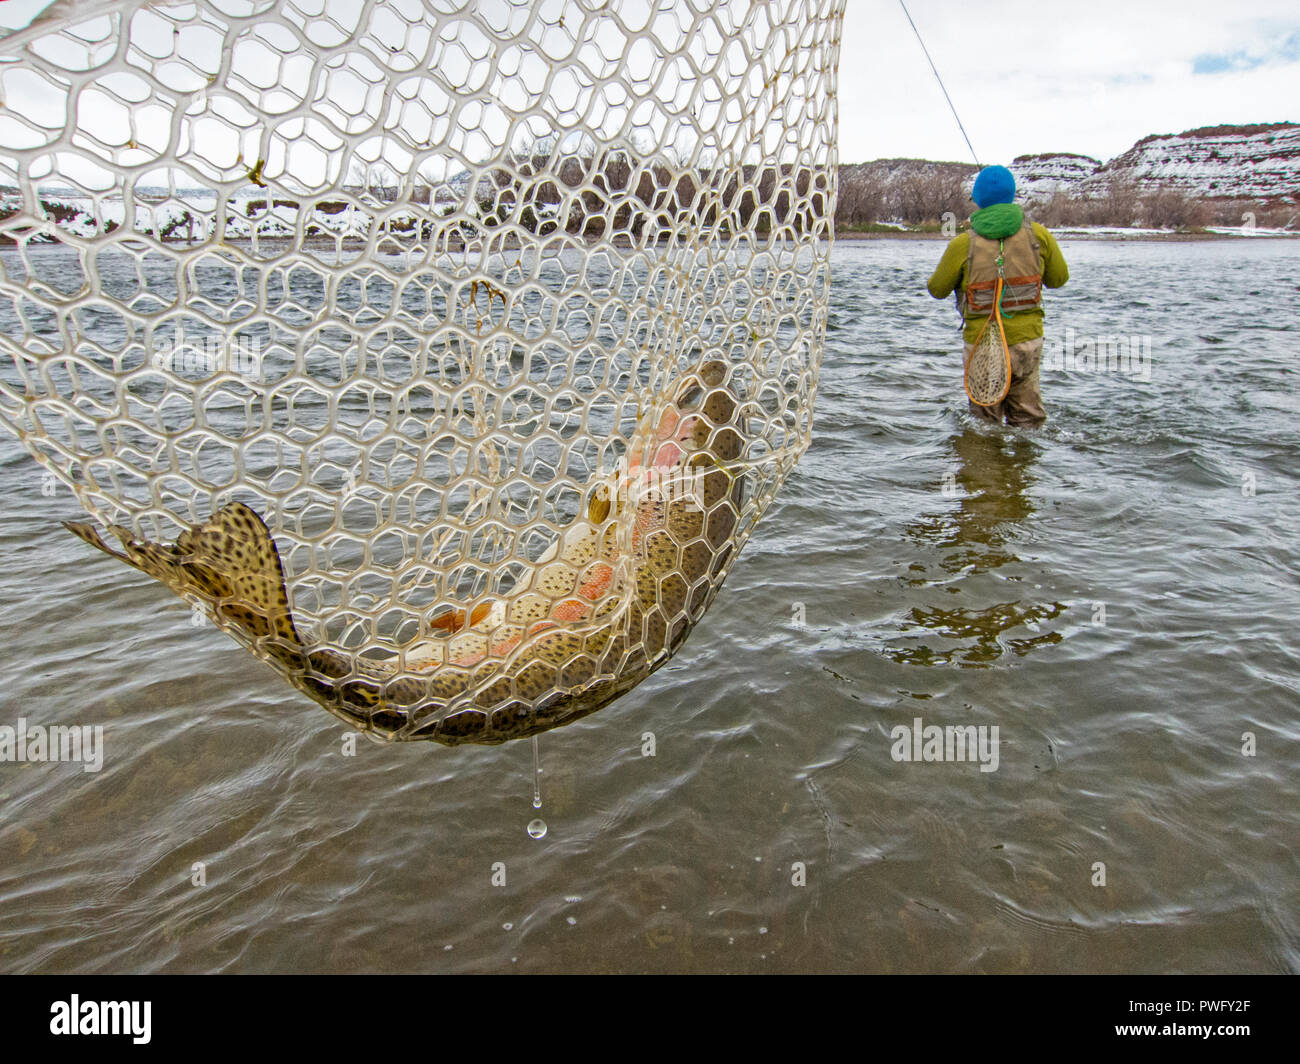 Fly fishing for trout on the North Platte River in Wyoming, USA - Stock Image